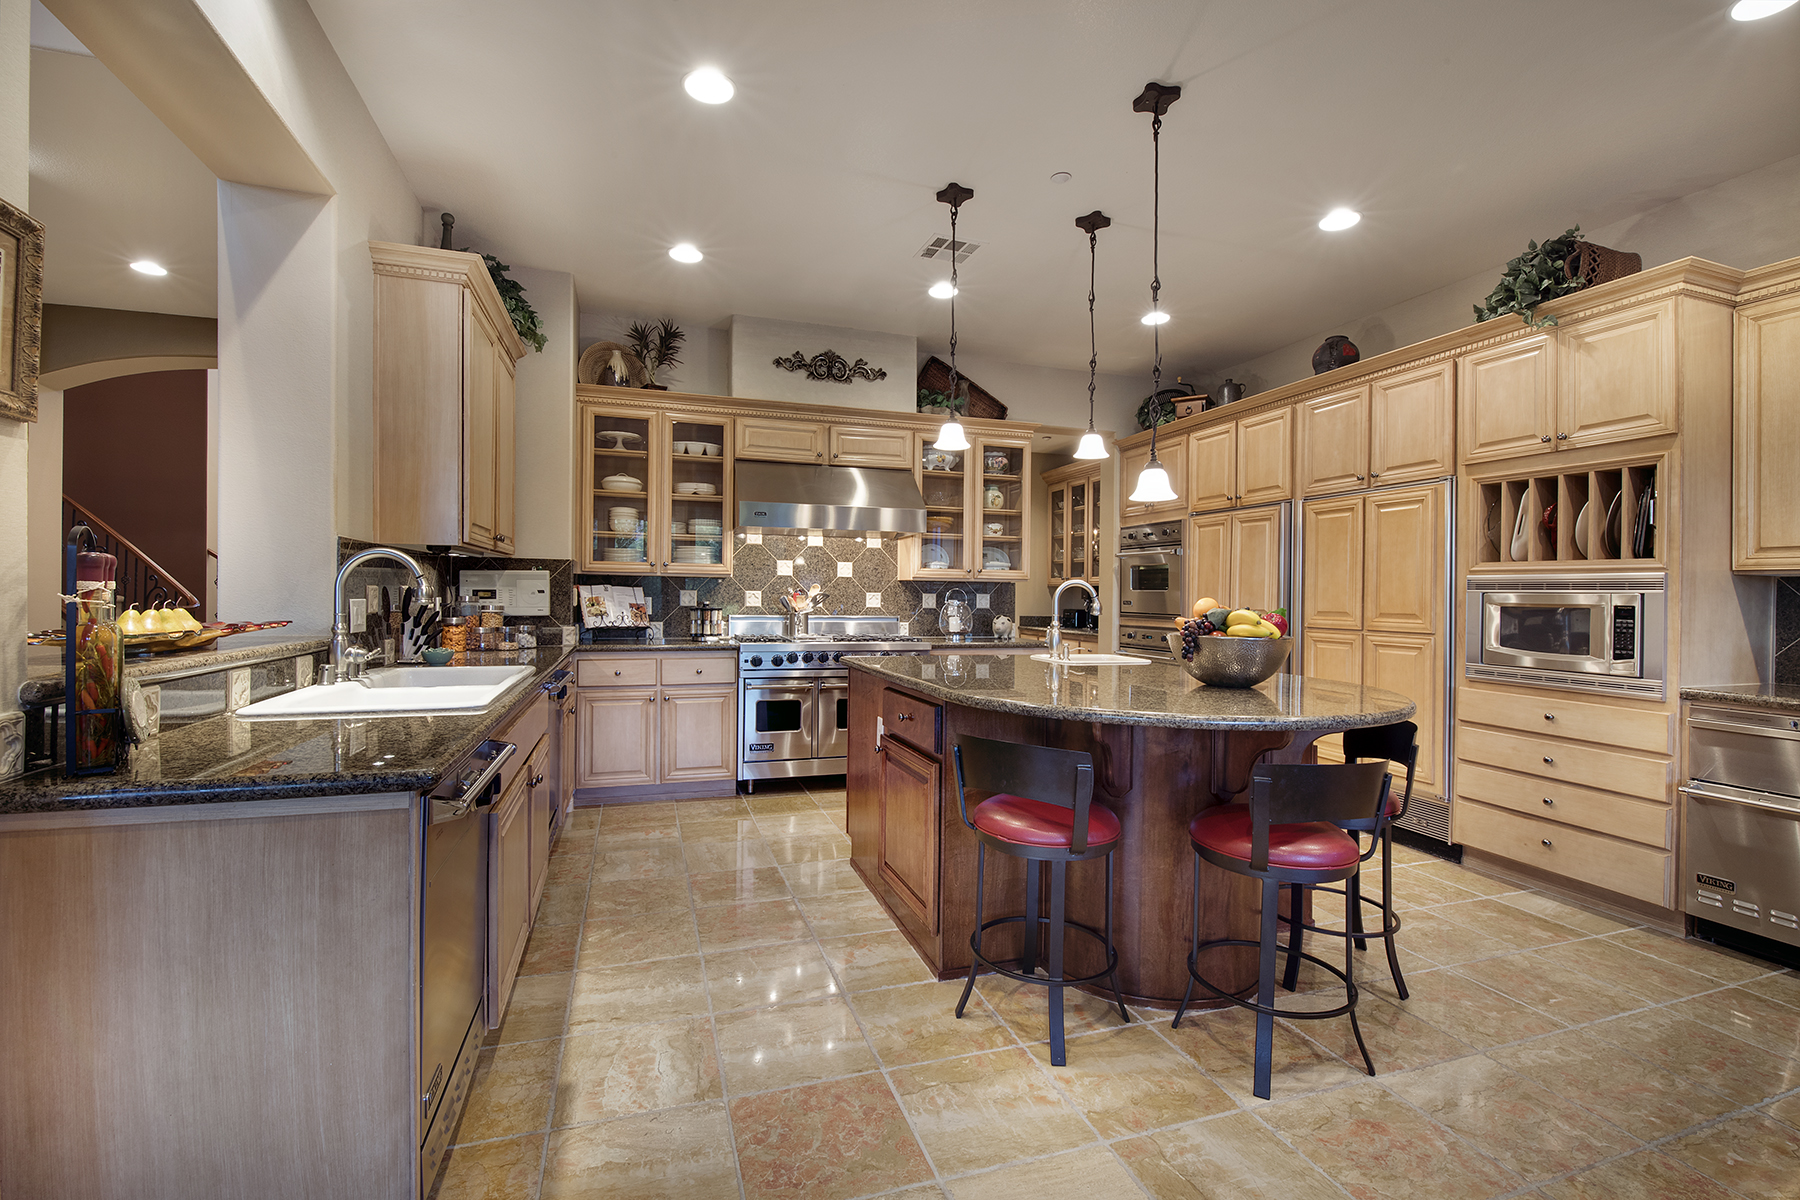 Additional photo for property listing at 49 Avenida Sorrento, Henderson, NV 89011 49 Avenida Sorrento Henderson, Nevada 89011 United States